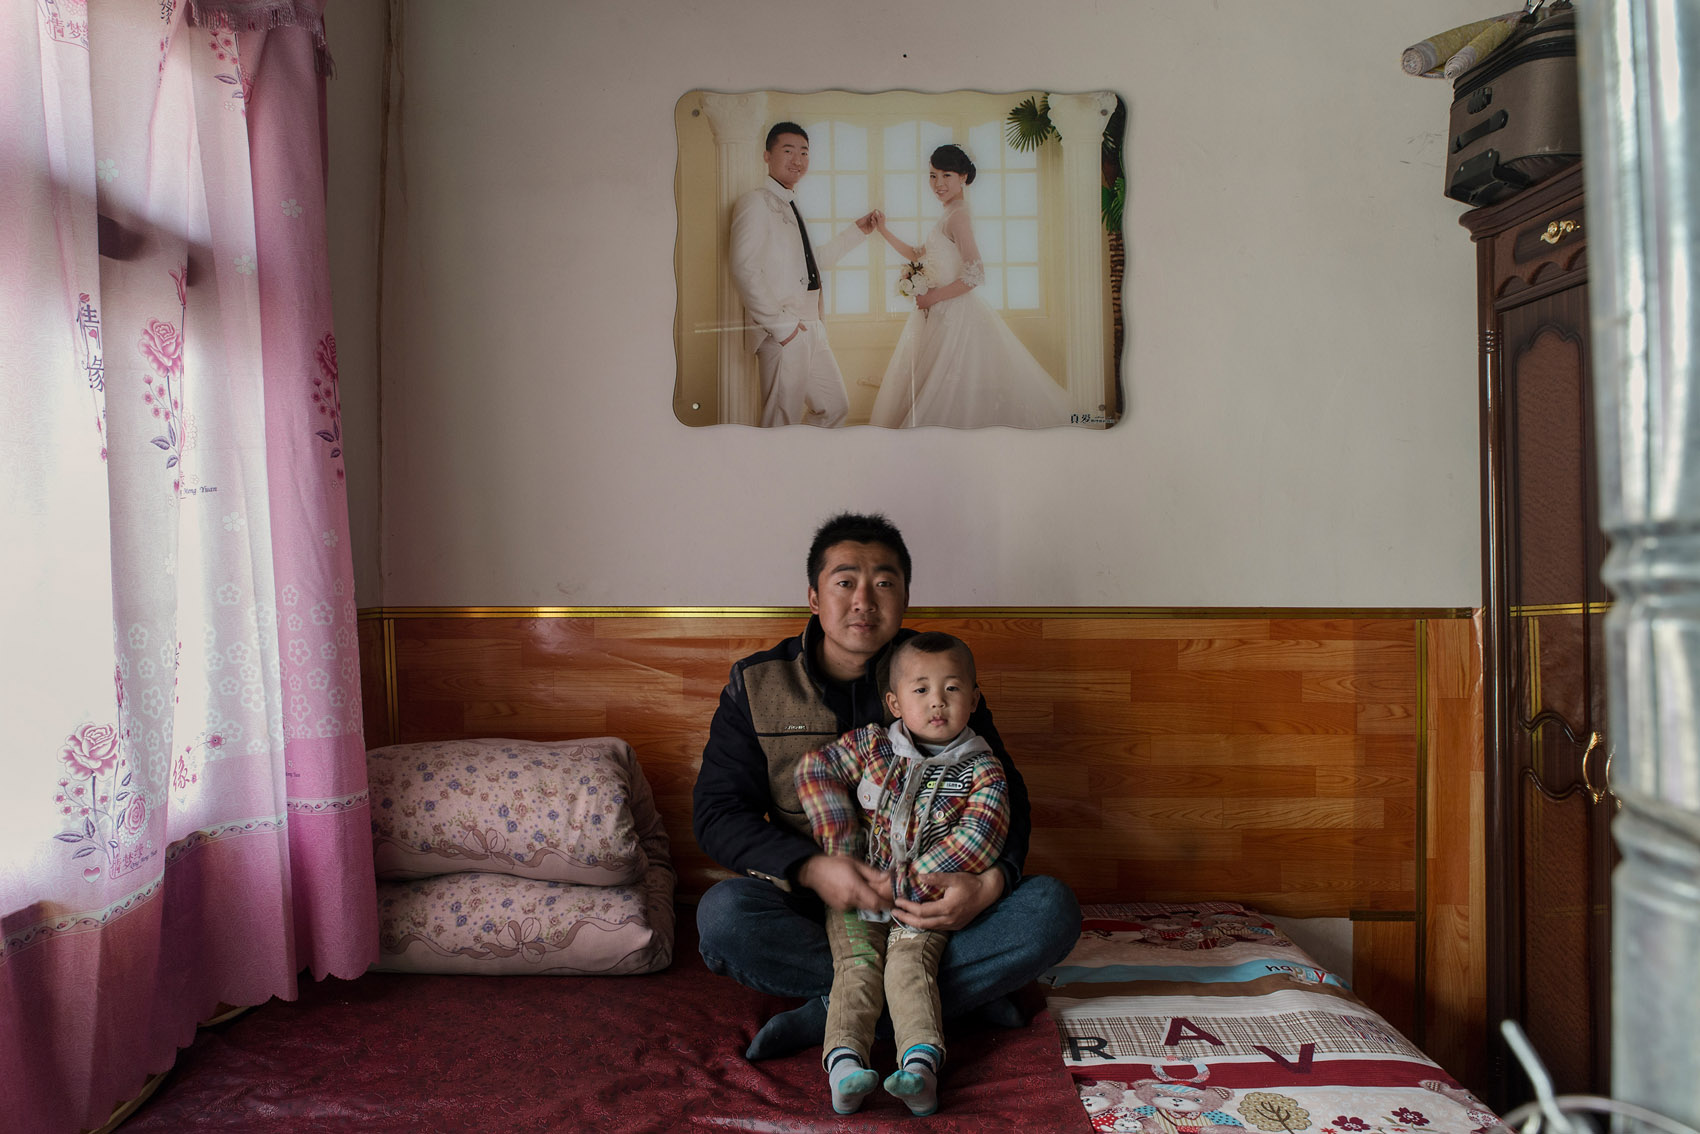 Anyuan Village  32 years old Niu Binggui, with his three years old son Niu Haoran Niu Binggui is a cook for a construction company in Ningxia province several hundredkilometers away from the family hometown. He is now is own boss in charge of the catering for aconstruction site. It means a little more money but also more responsibilities. For 10 years he has been working as a cook in restaurants and dreams of opening his own, but lacks the funds to do so.  In two day he will be leaving for work at the end of his new year break. He won't see his family again before months.